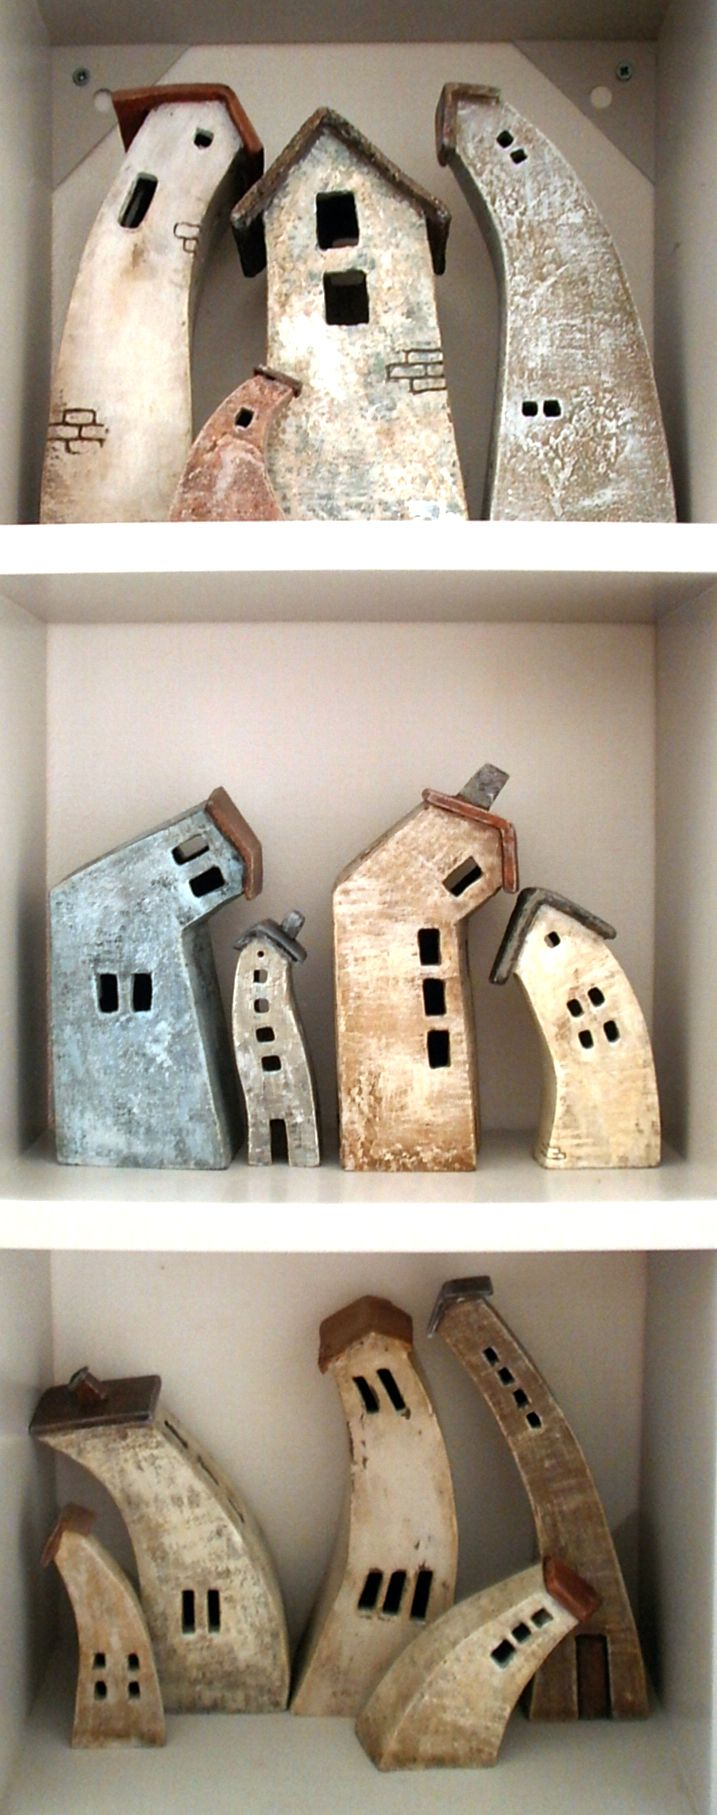 I know these cute bendy buildings  are clay but the idea could work for…